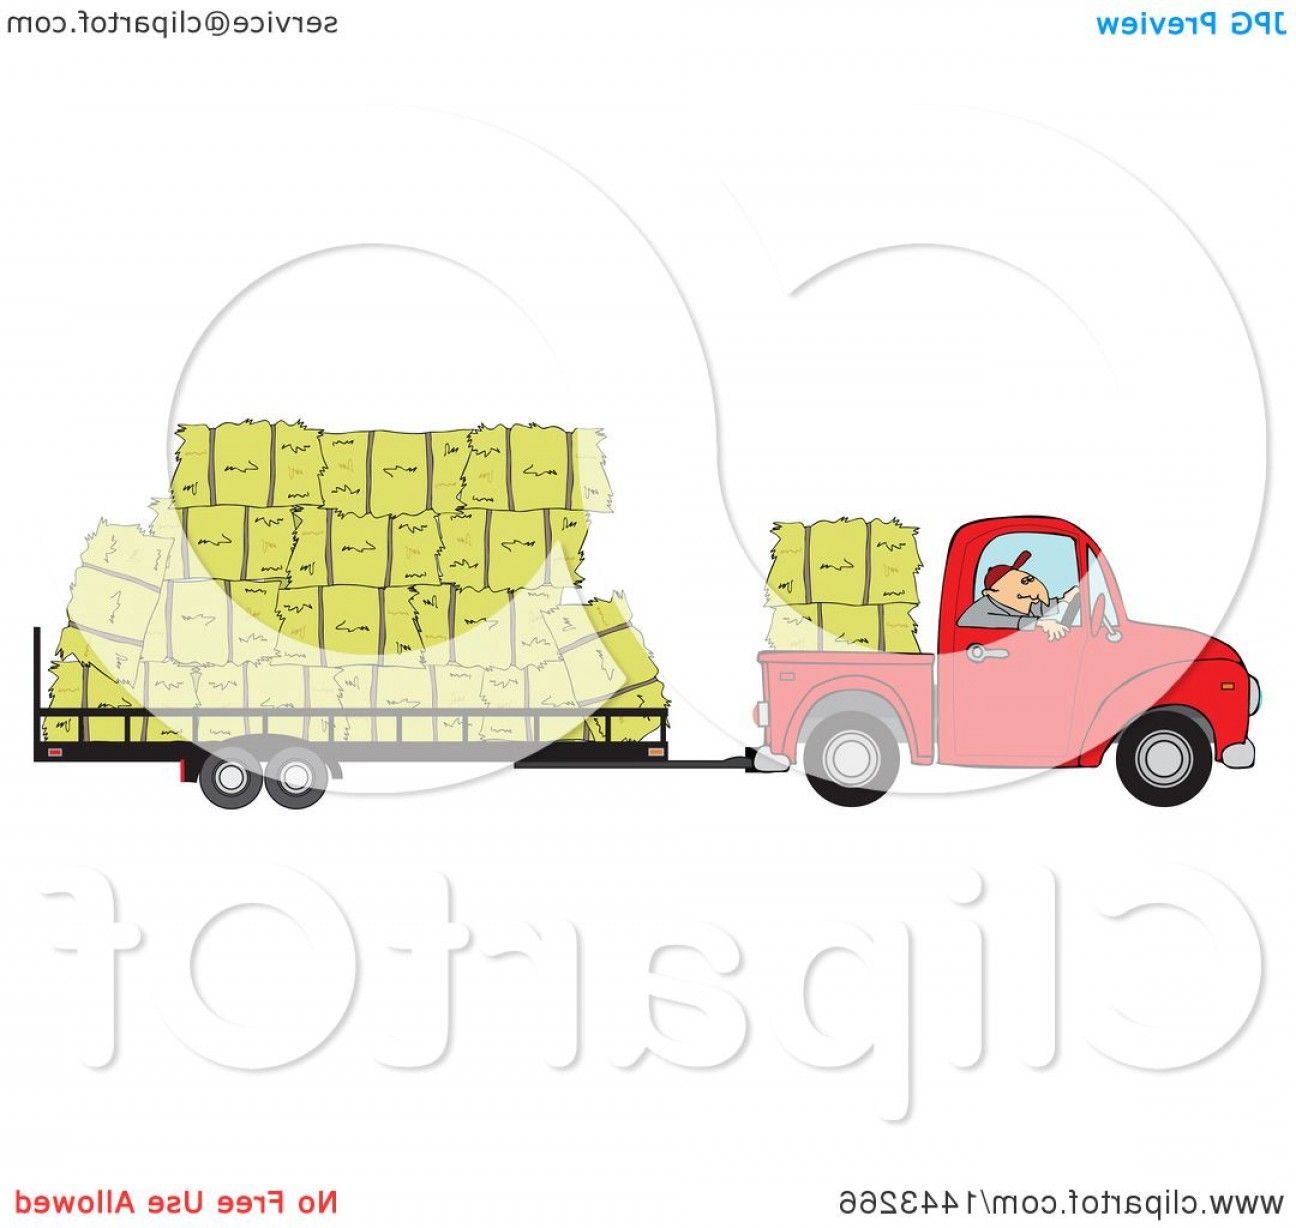 Vector Truck And Trailer Hauling: Cartoon White Man Driving A Red Pickup Truck And Hauling Hay Bales On A Trailer